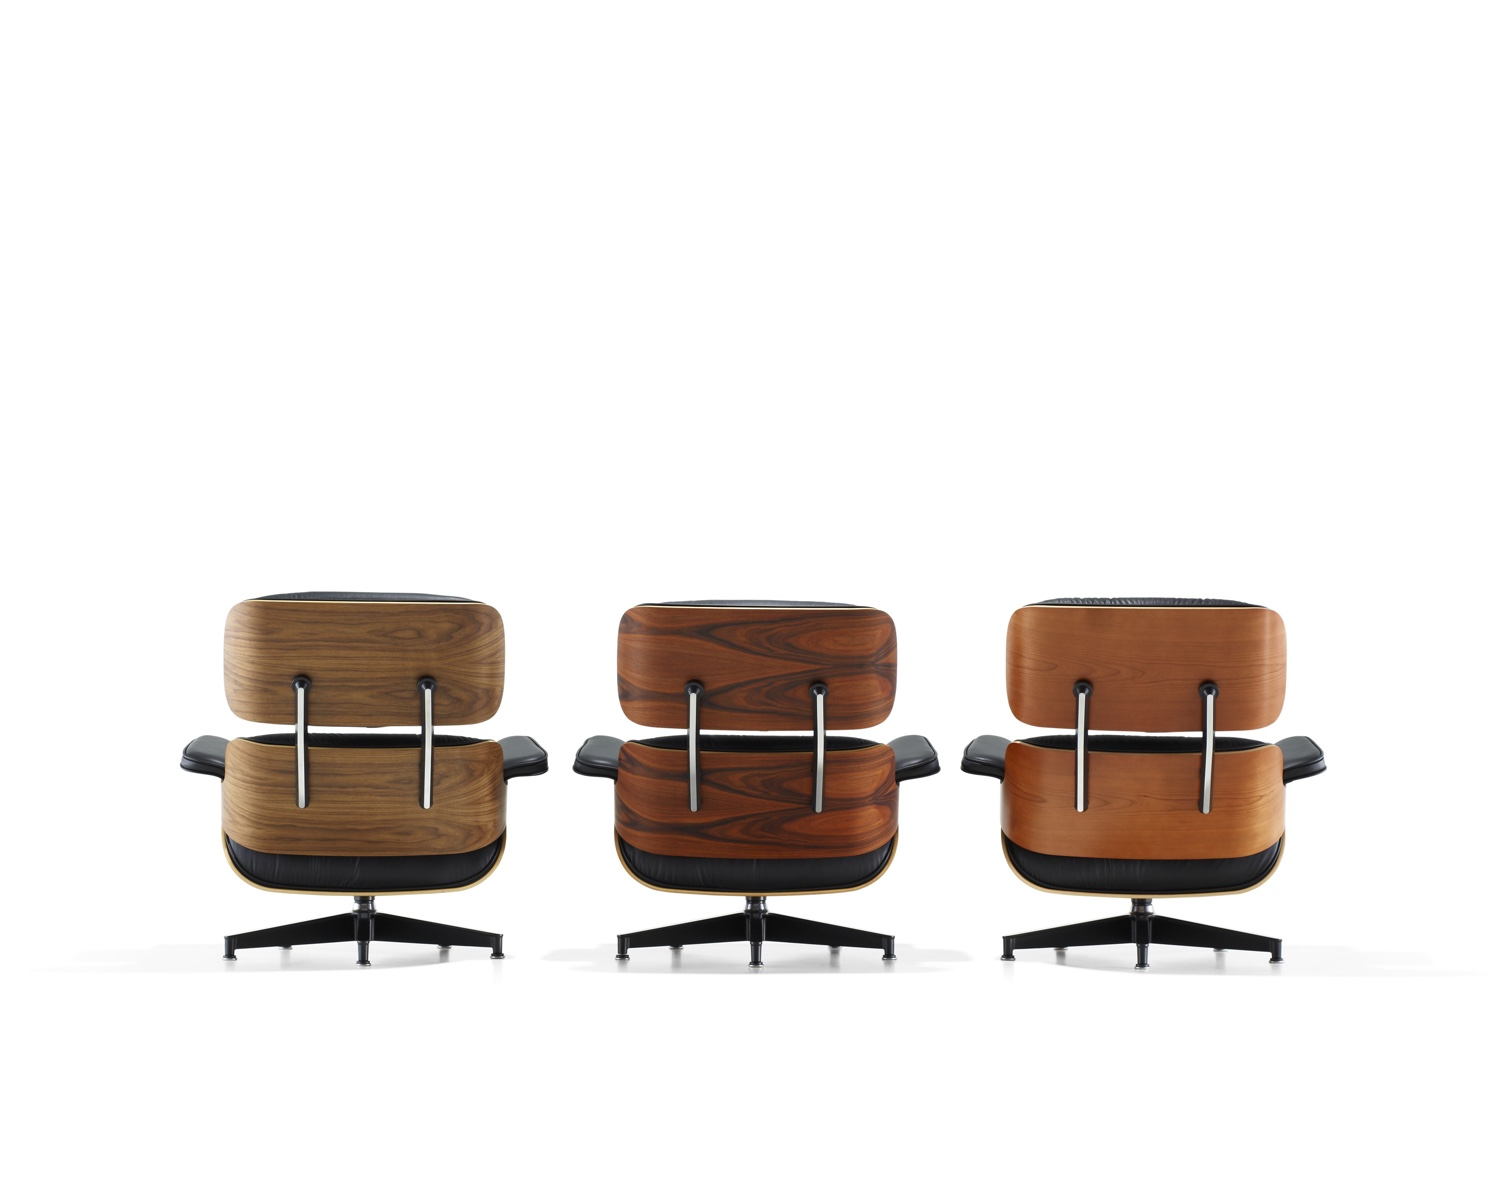 Eames Lounge Chairs in different veneers. Image © 2016 Herman Miller, Inc.